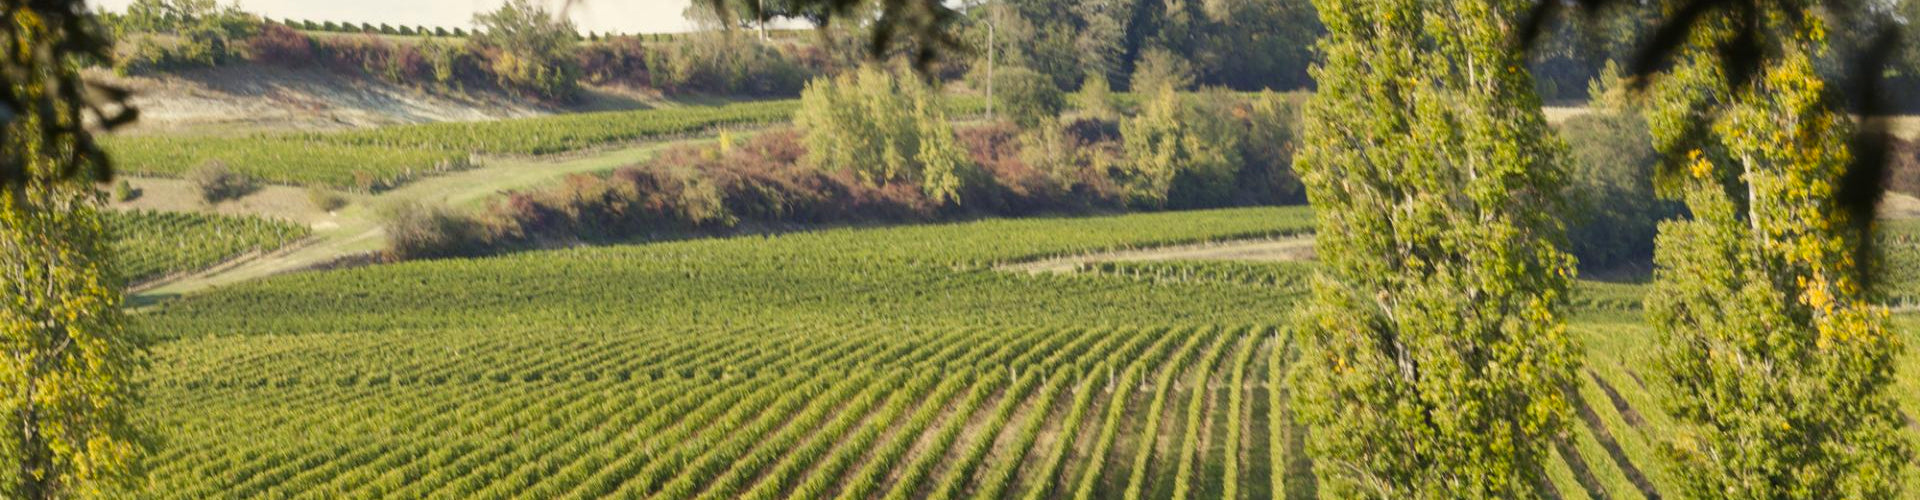 Vineyards in the Libournais Wine District of Bordeaux in France